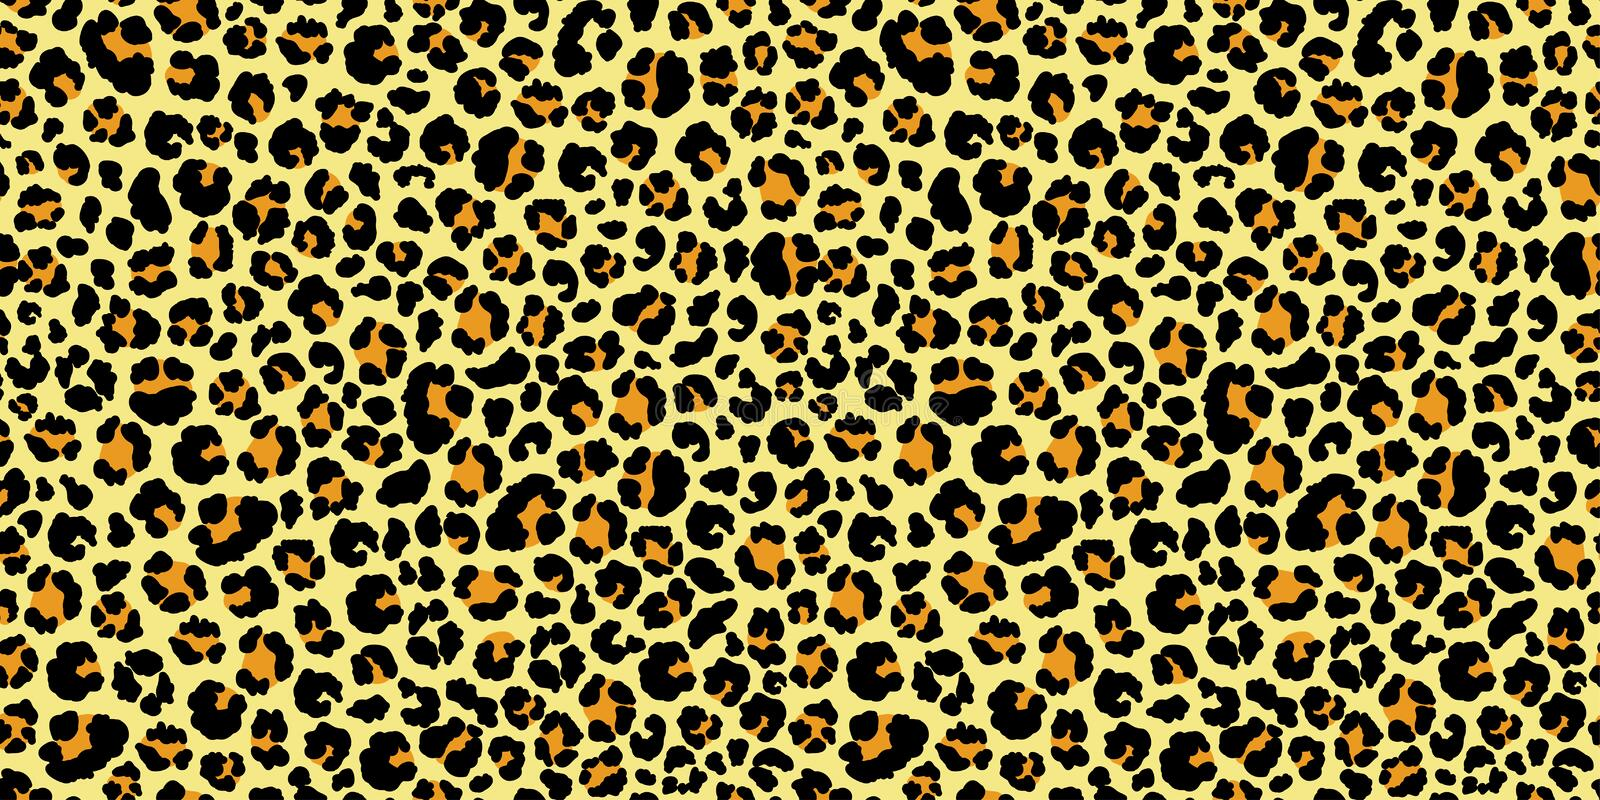 leopard seamless pattern animal print vector background stock rh dreamstime com Cheetah Print Drawing Cheetah Vector Background